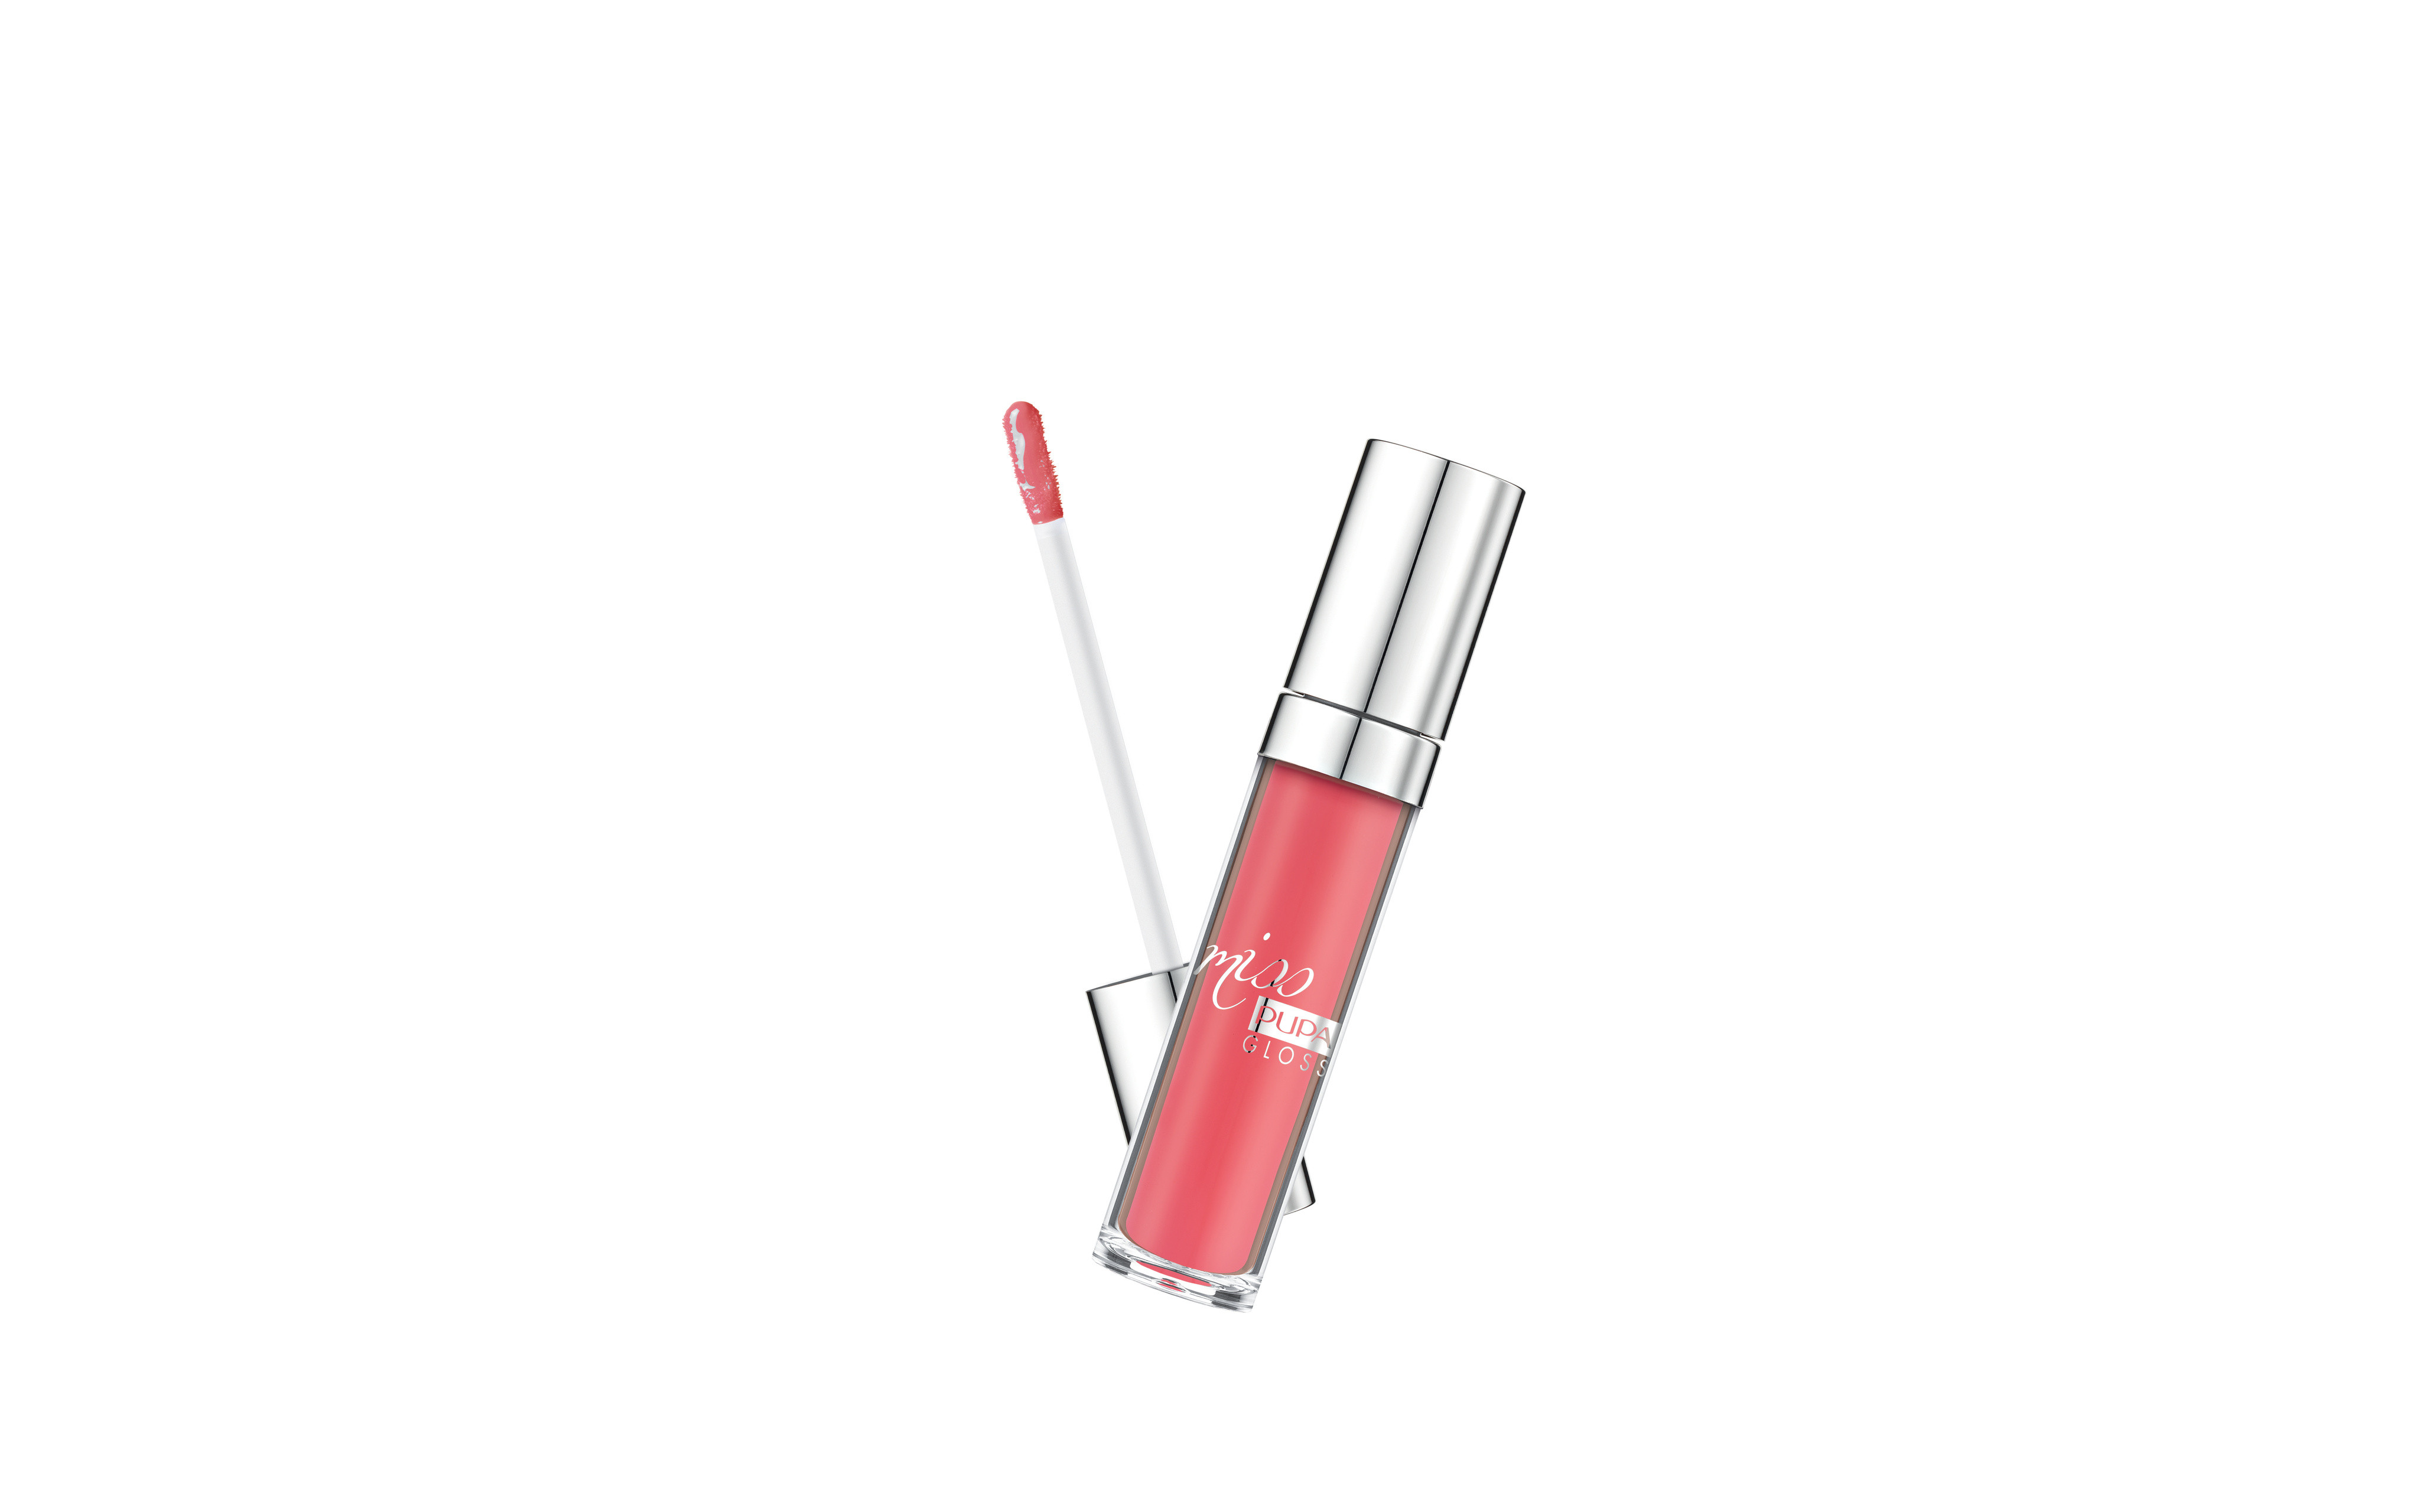 Pupa miss pupa gloss - 202, 202ROSTED APRICOT, large image number 0